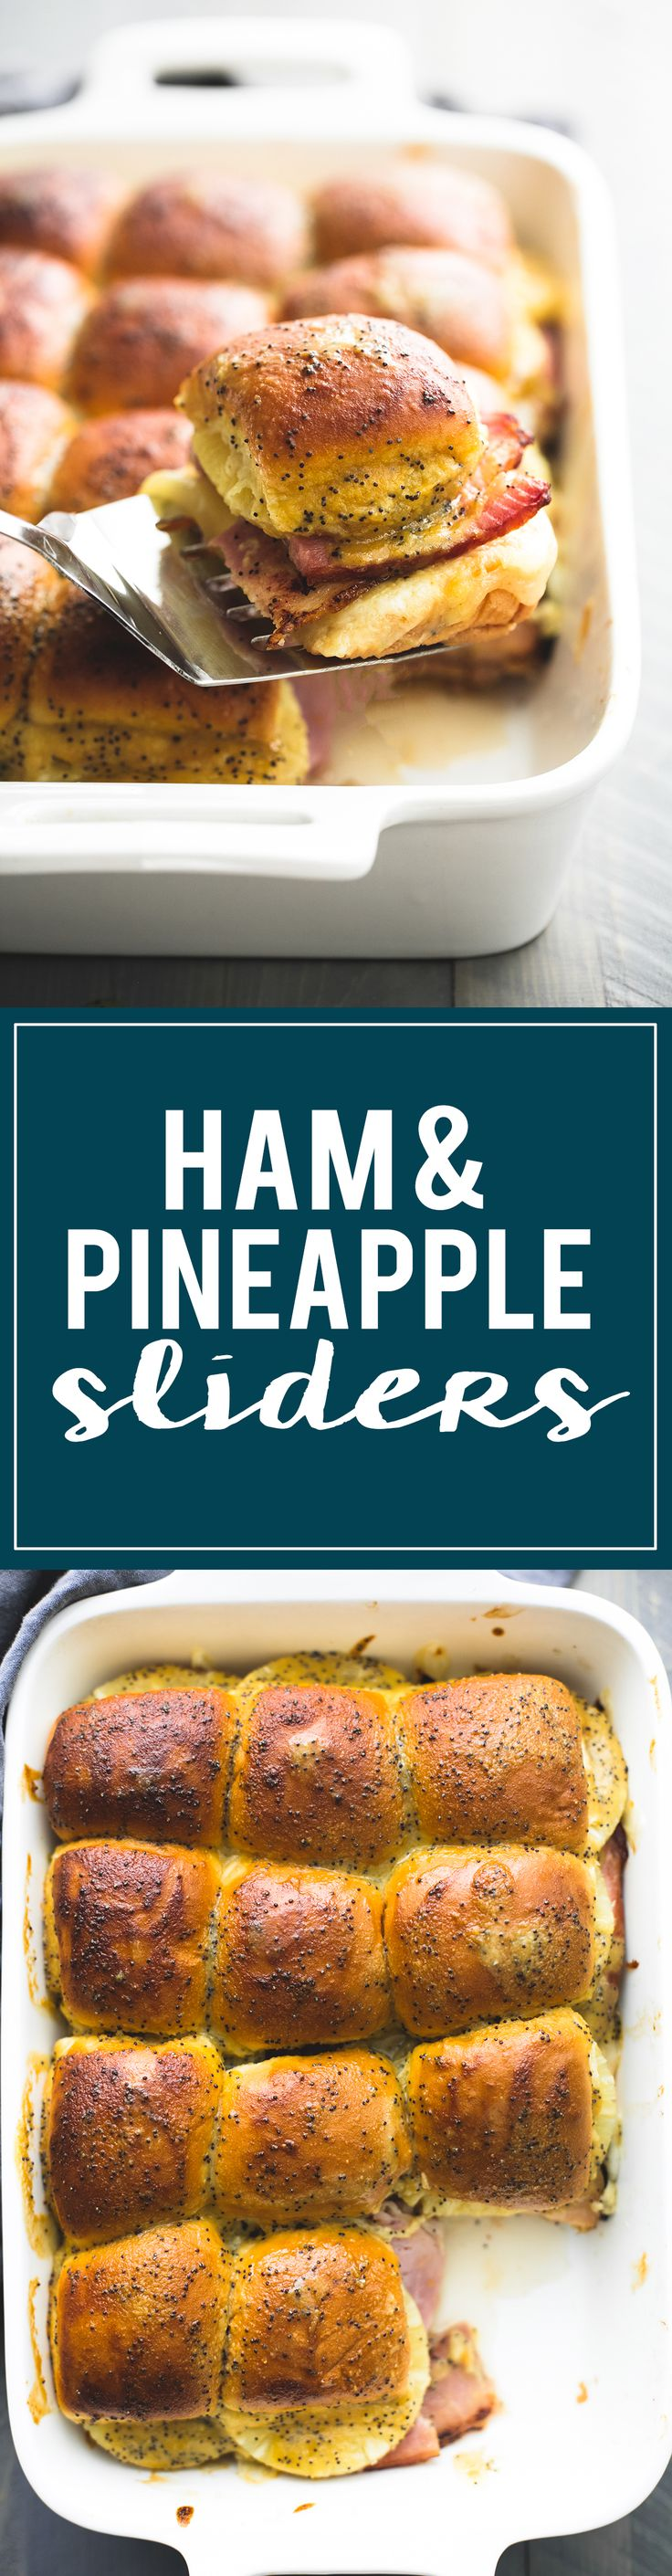 Hot Hawaiian Ham & Swiss Cheese Sliders with pineapple and brown sugar dijon poppyseed sauce are seriously addictive!!! | lecremedelacrumb.com